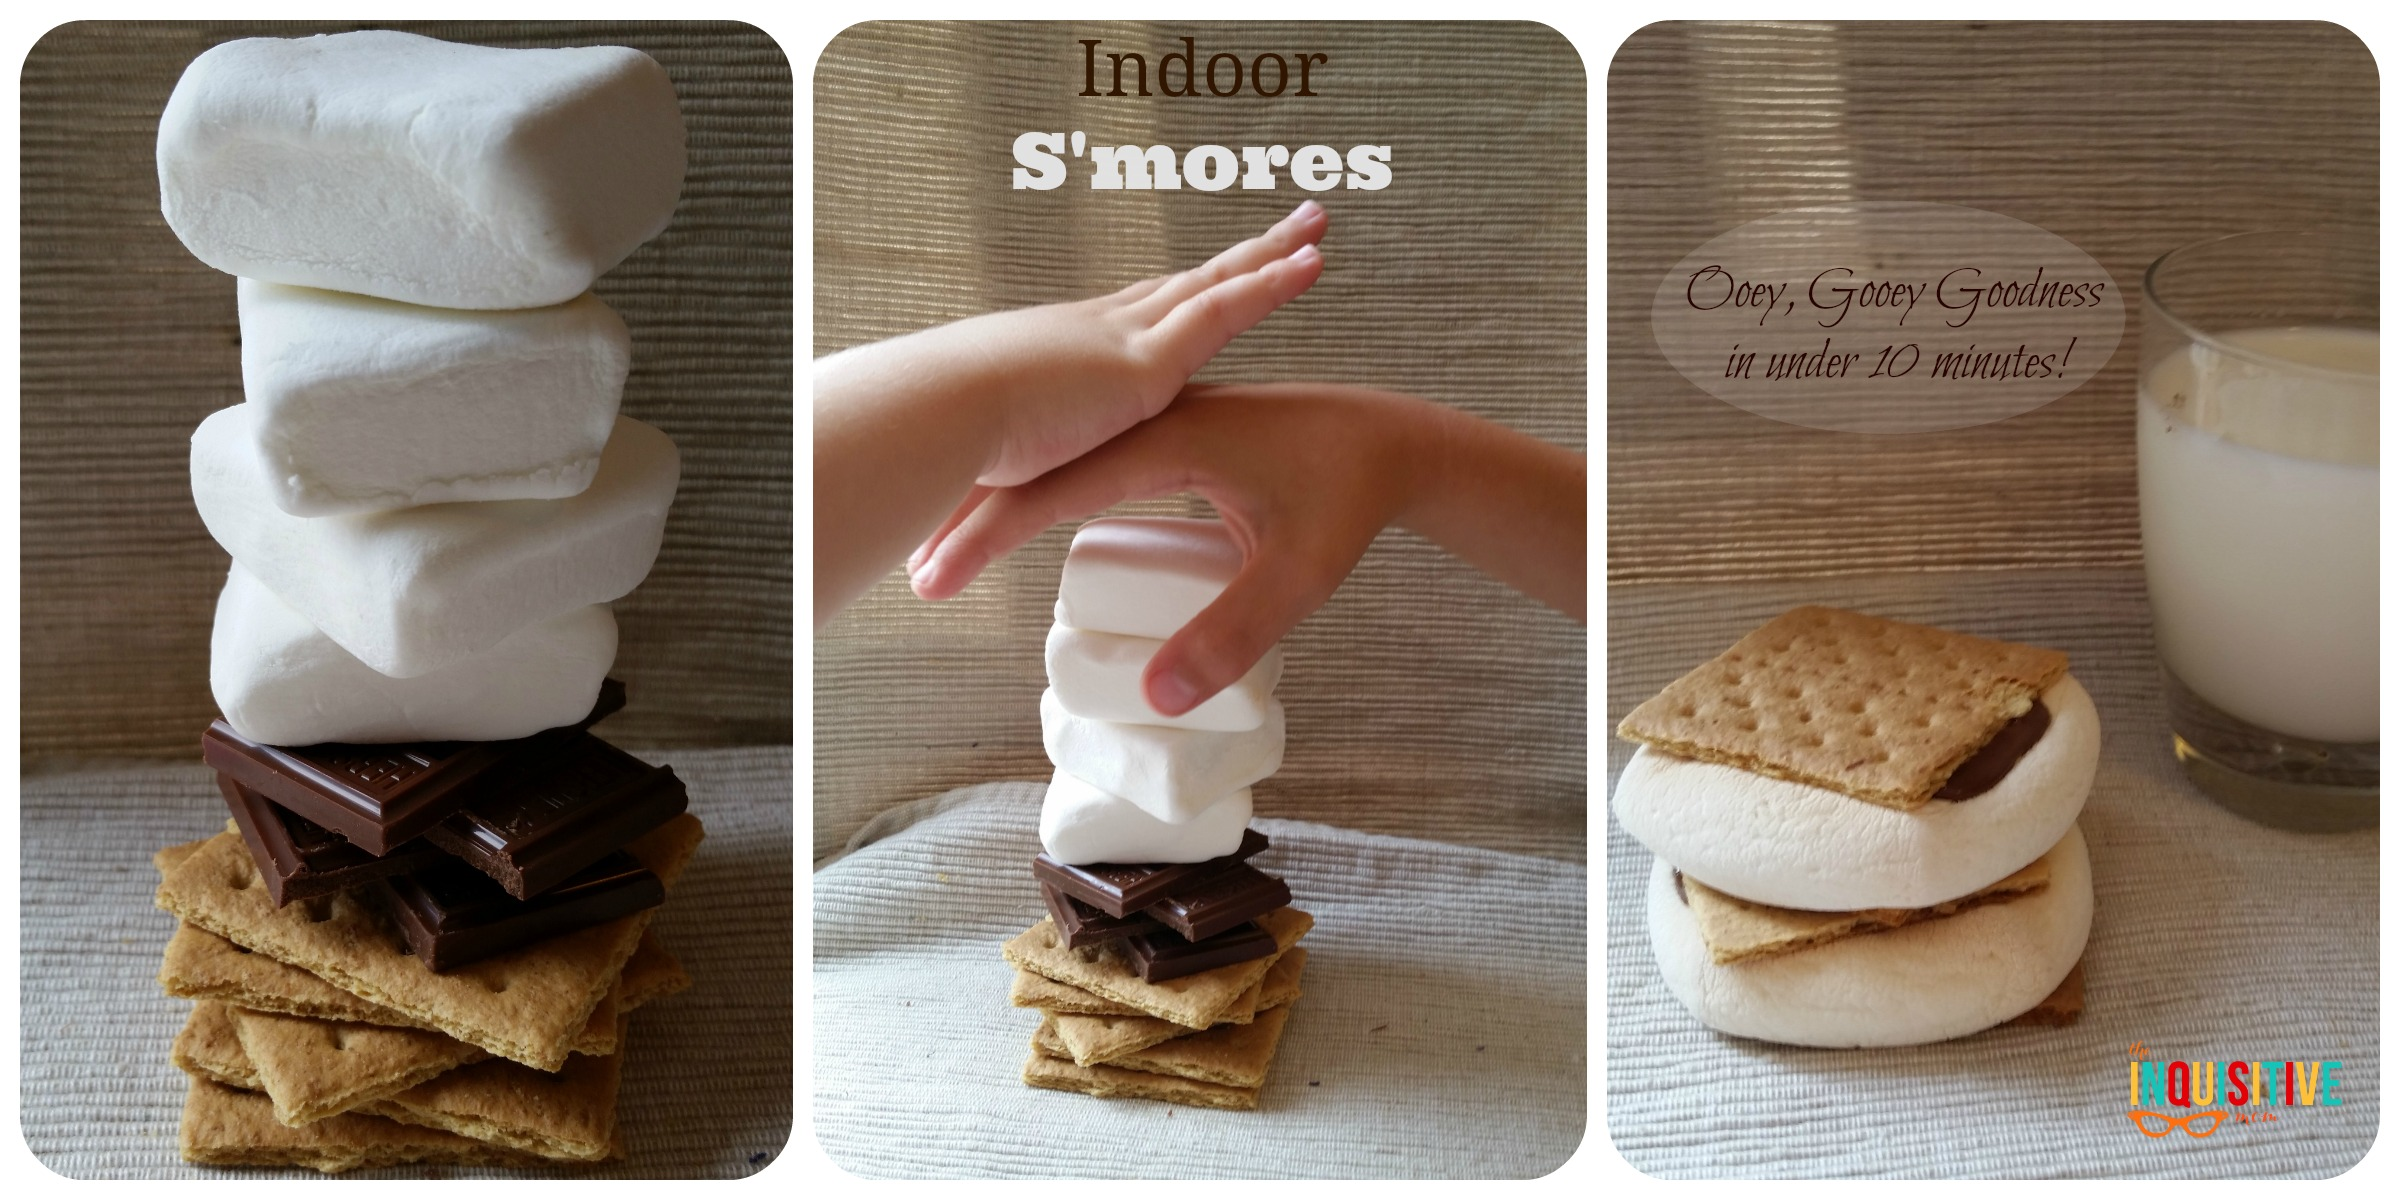 Indoor S'mores in your oven in less than 10 minutes from The Inquisitive Mom Blog. @InqMomBlog